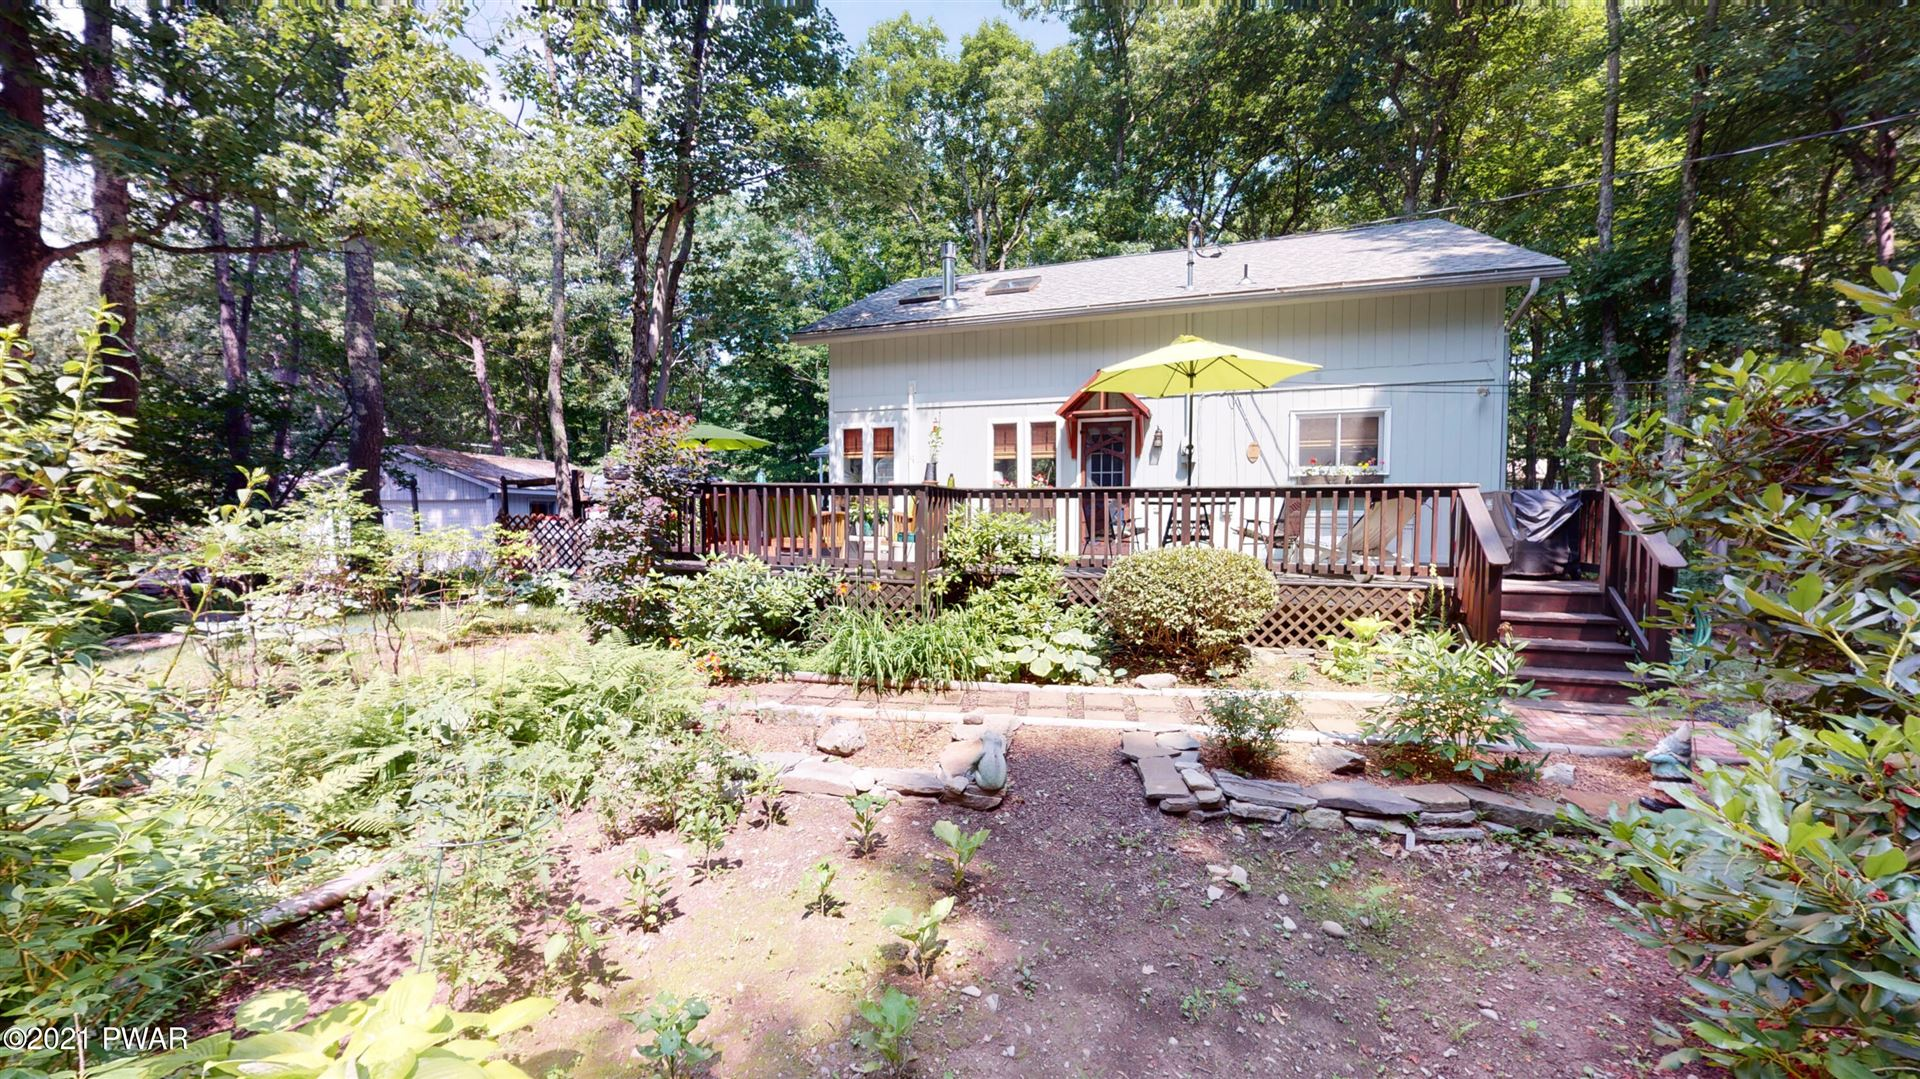 Photo of 114 Jackson Dr, Lords Valley, PA 18428 (MLS # 21-2629)